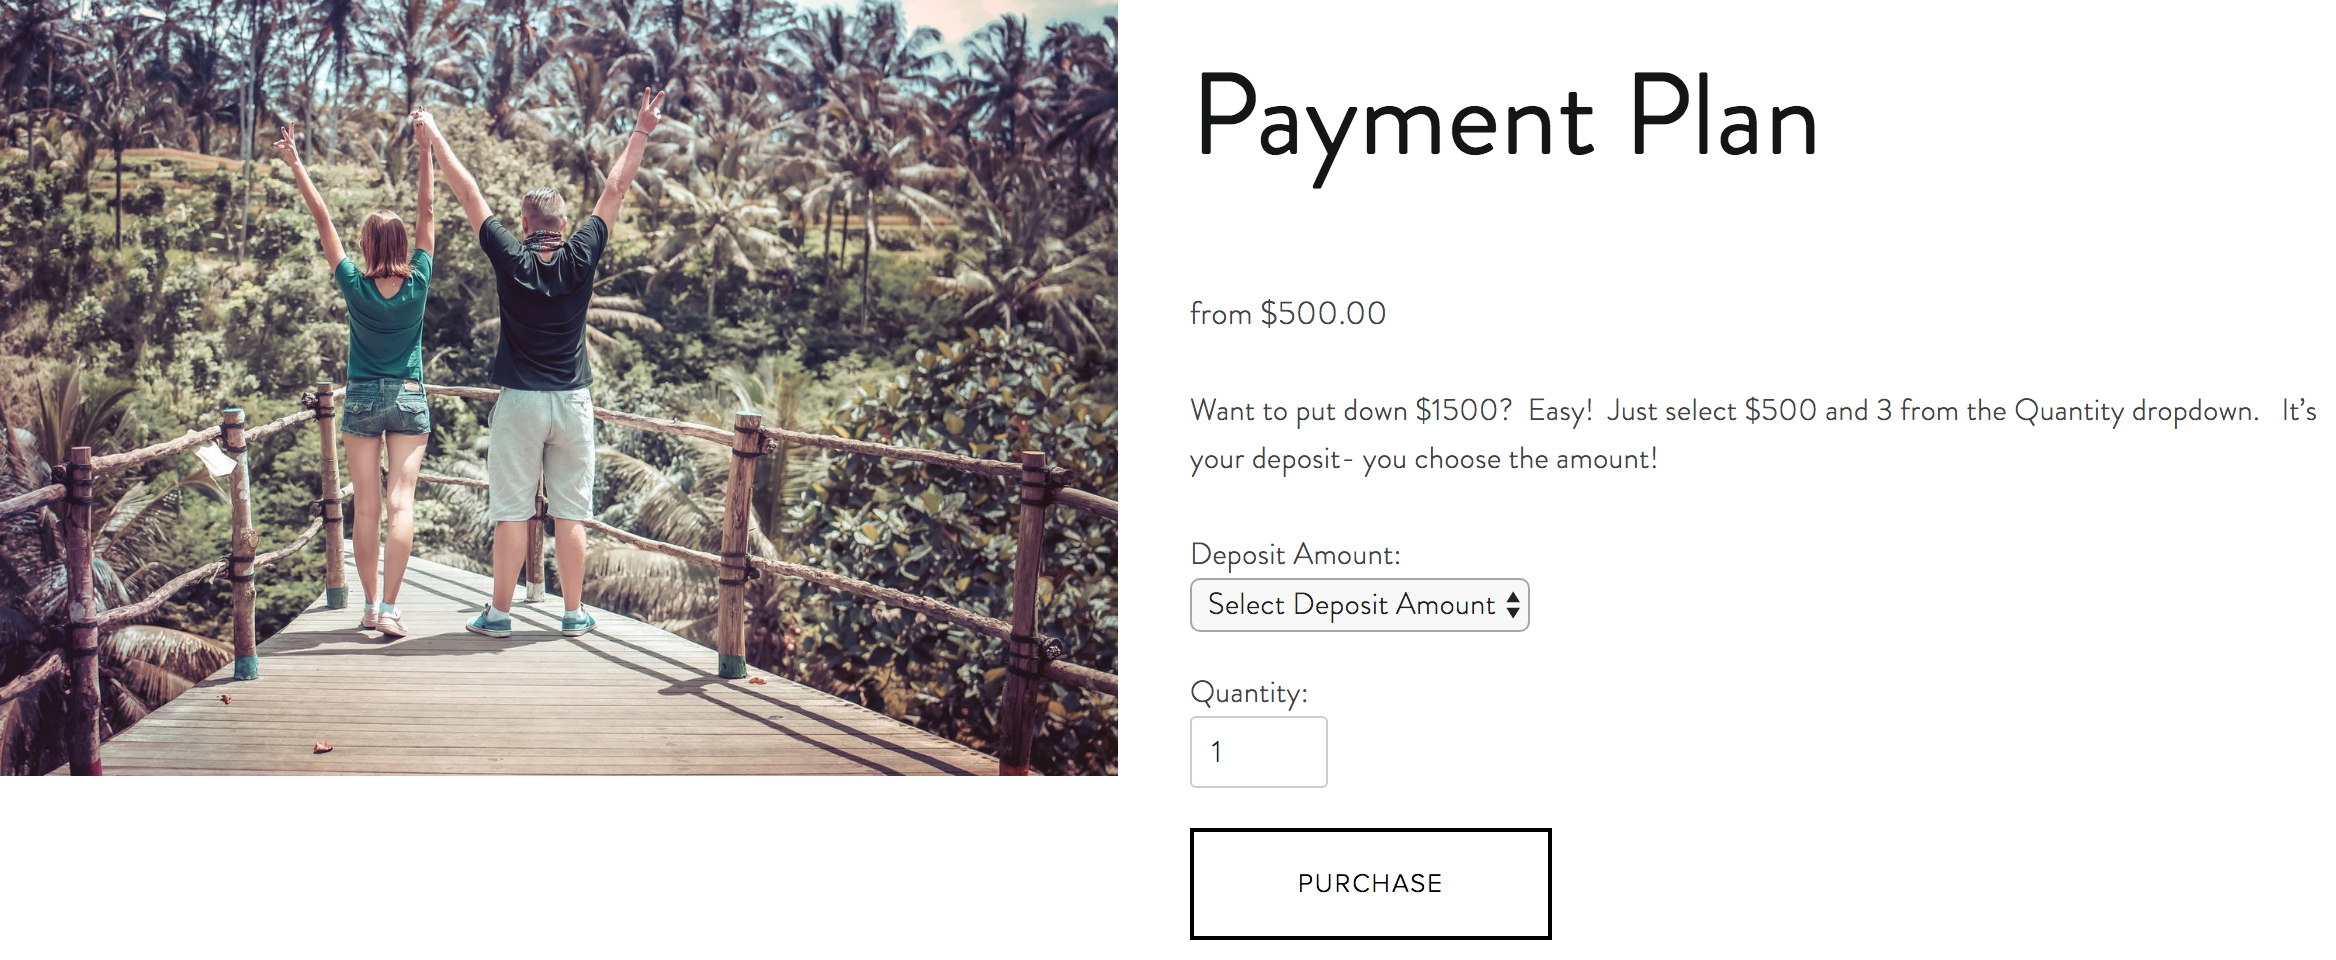 Whisked Away Surprise Travel Payment Plan